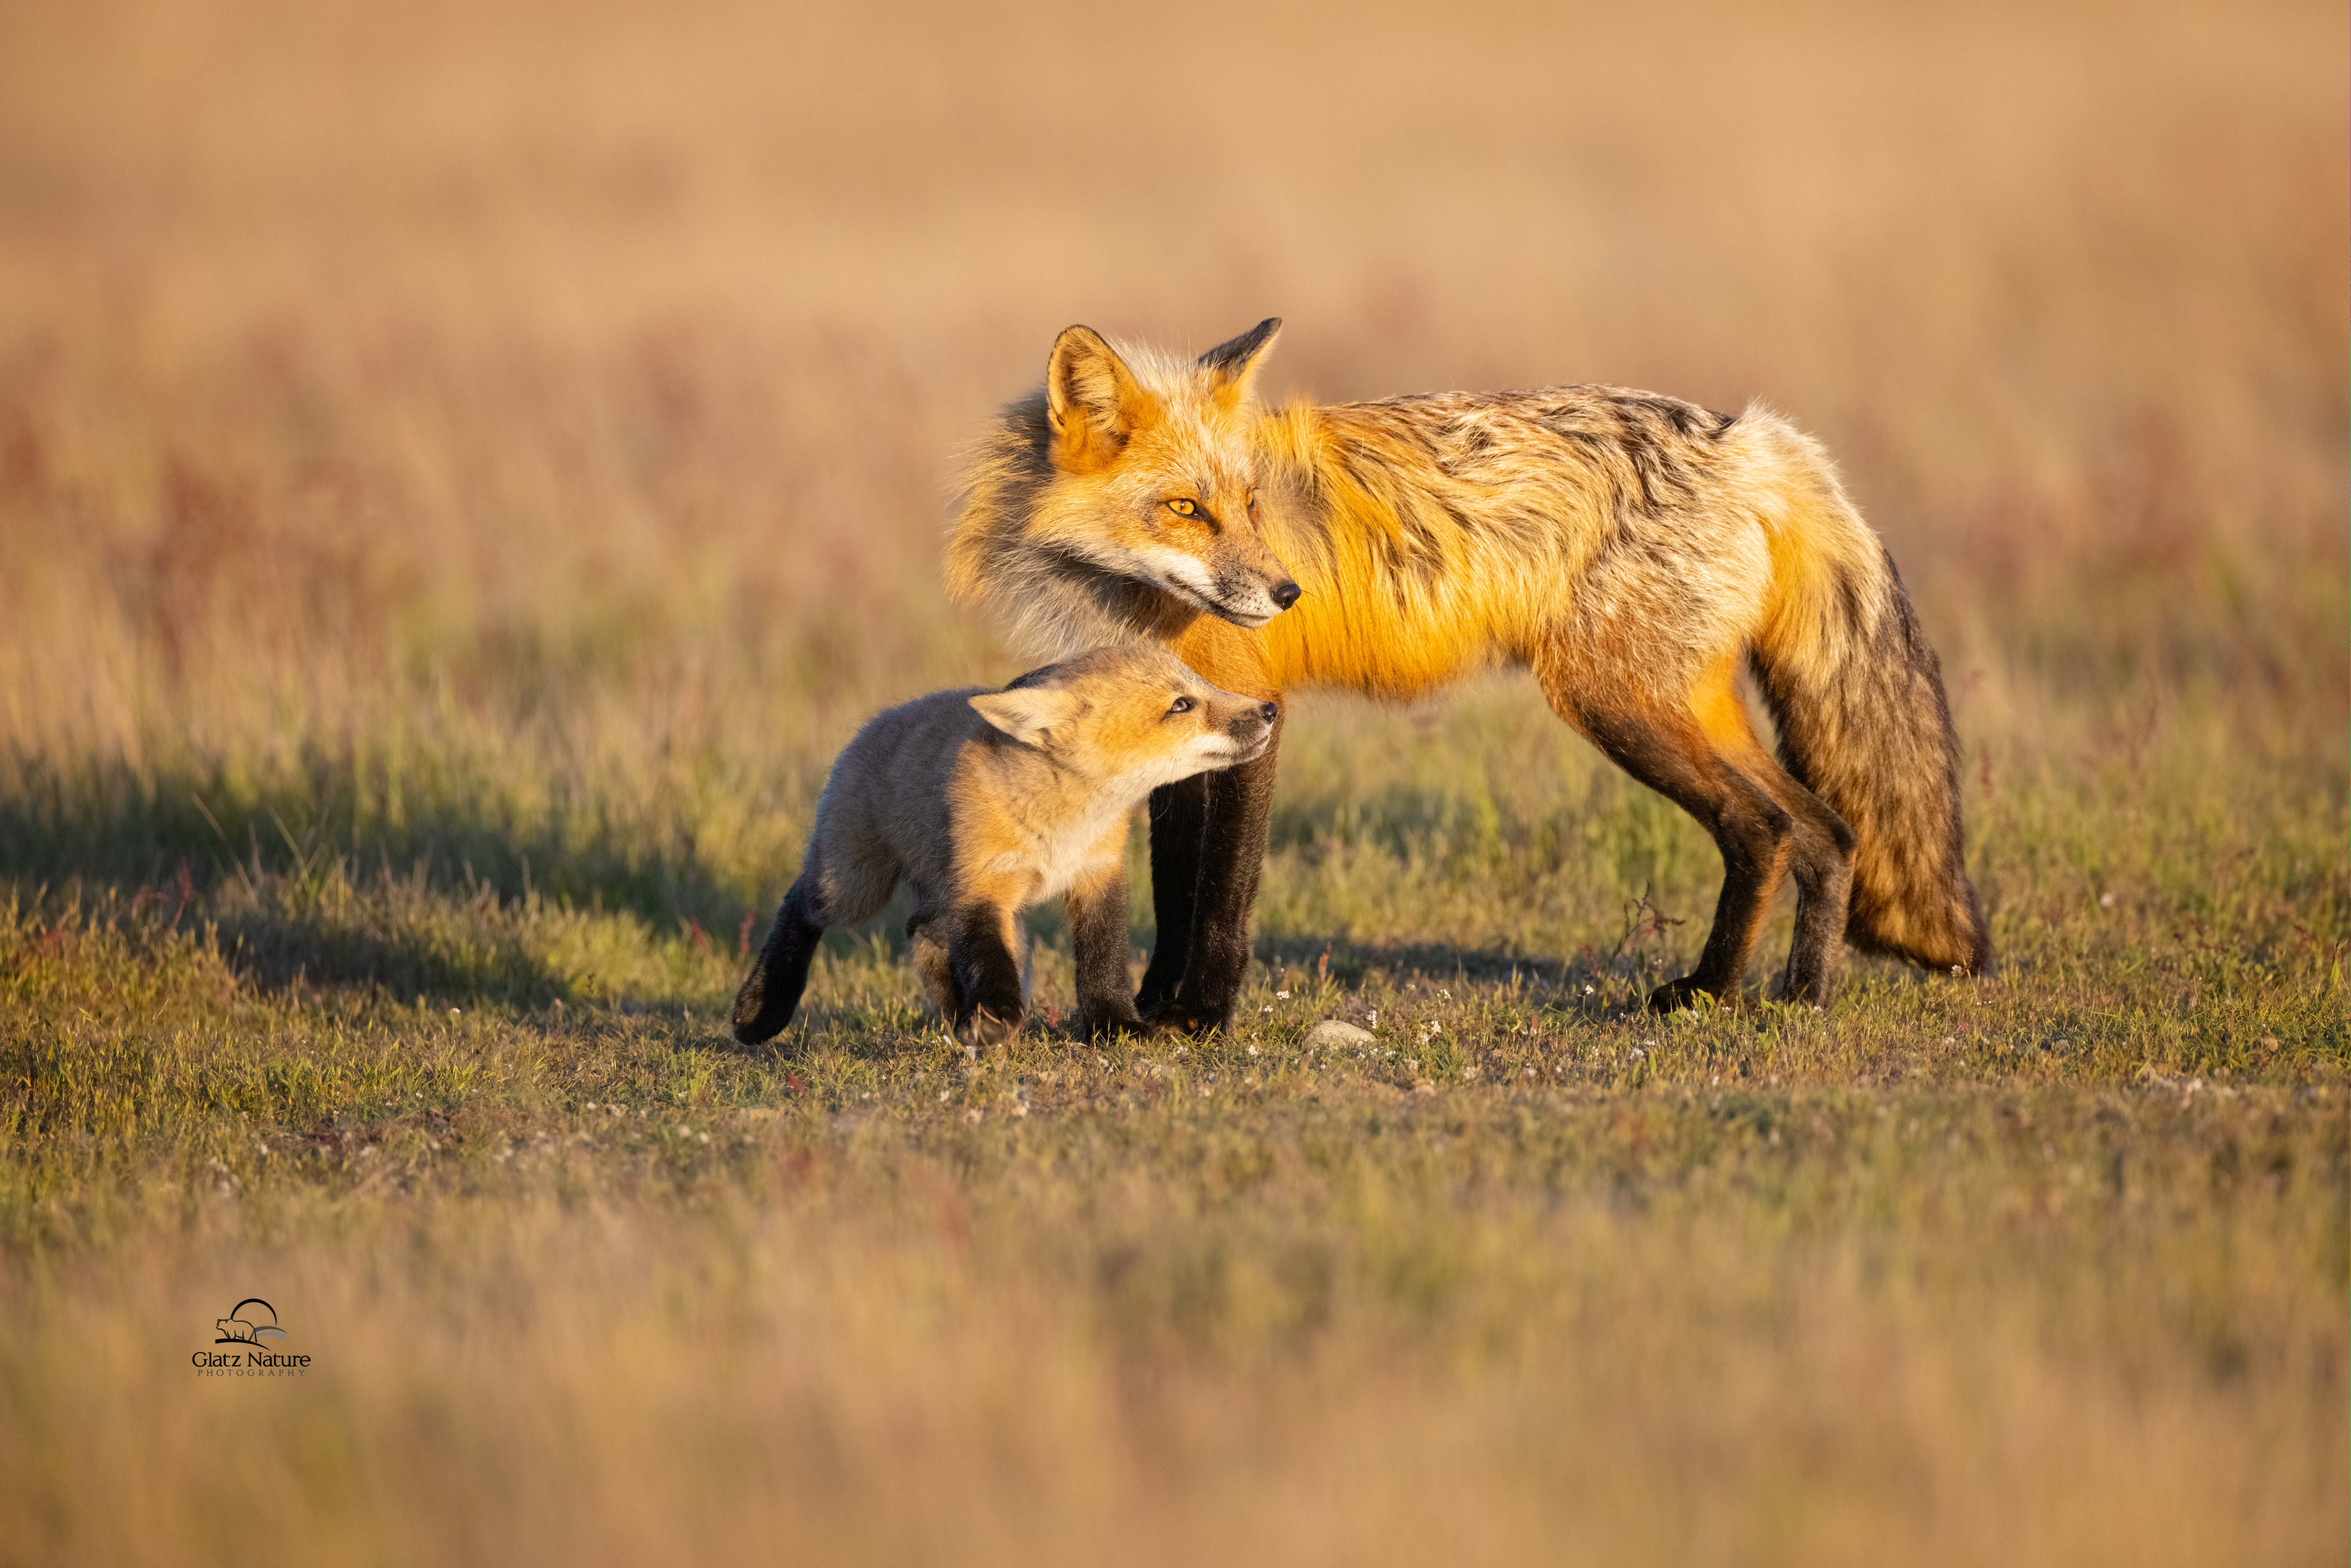 father and daughter fox 4k 1629139592 - Father And Daughter Fox 4k - Father And Daughter Fox wallpapers, Father And Daughter Fox 4k wallpapers